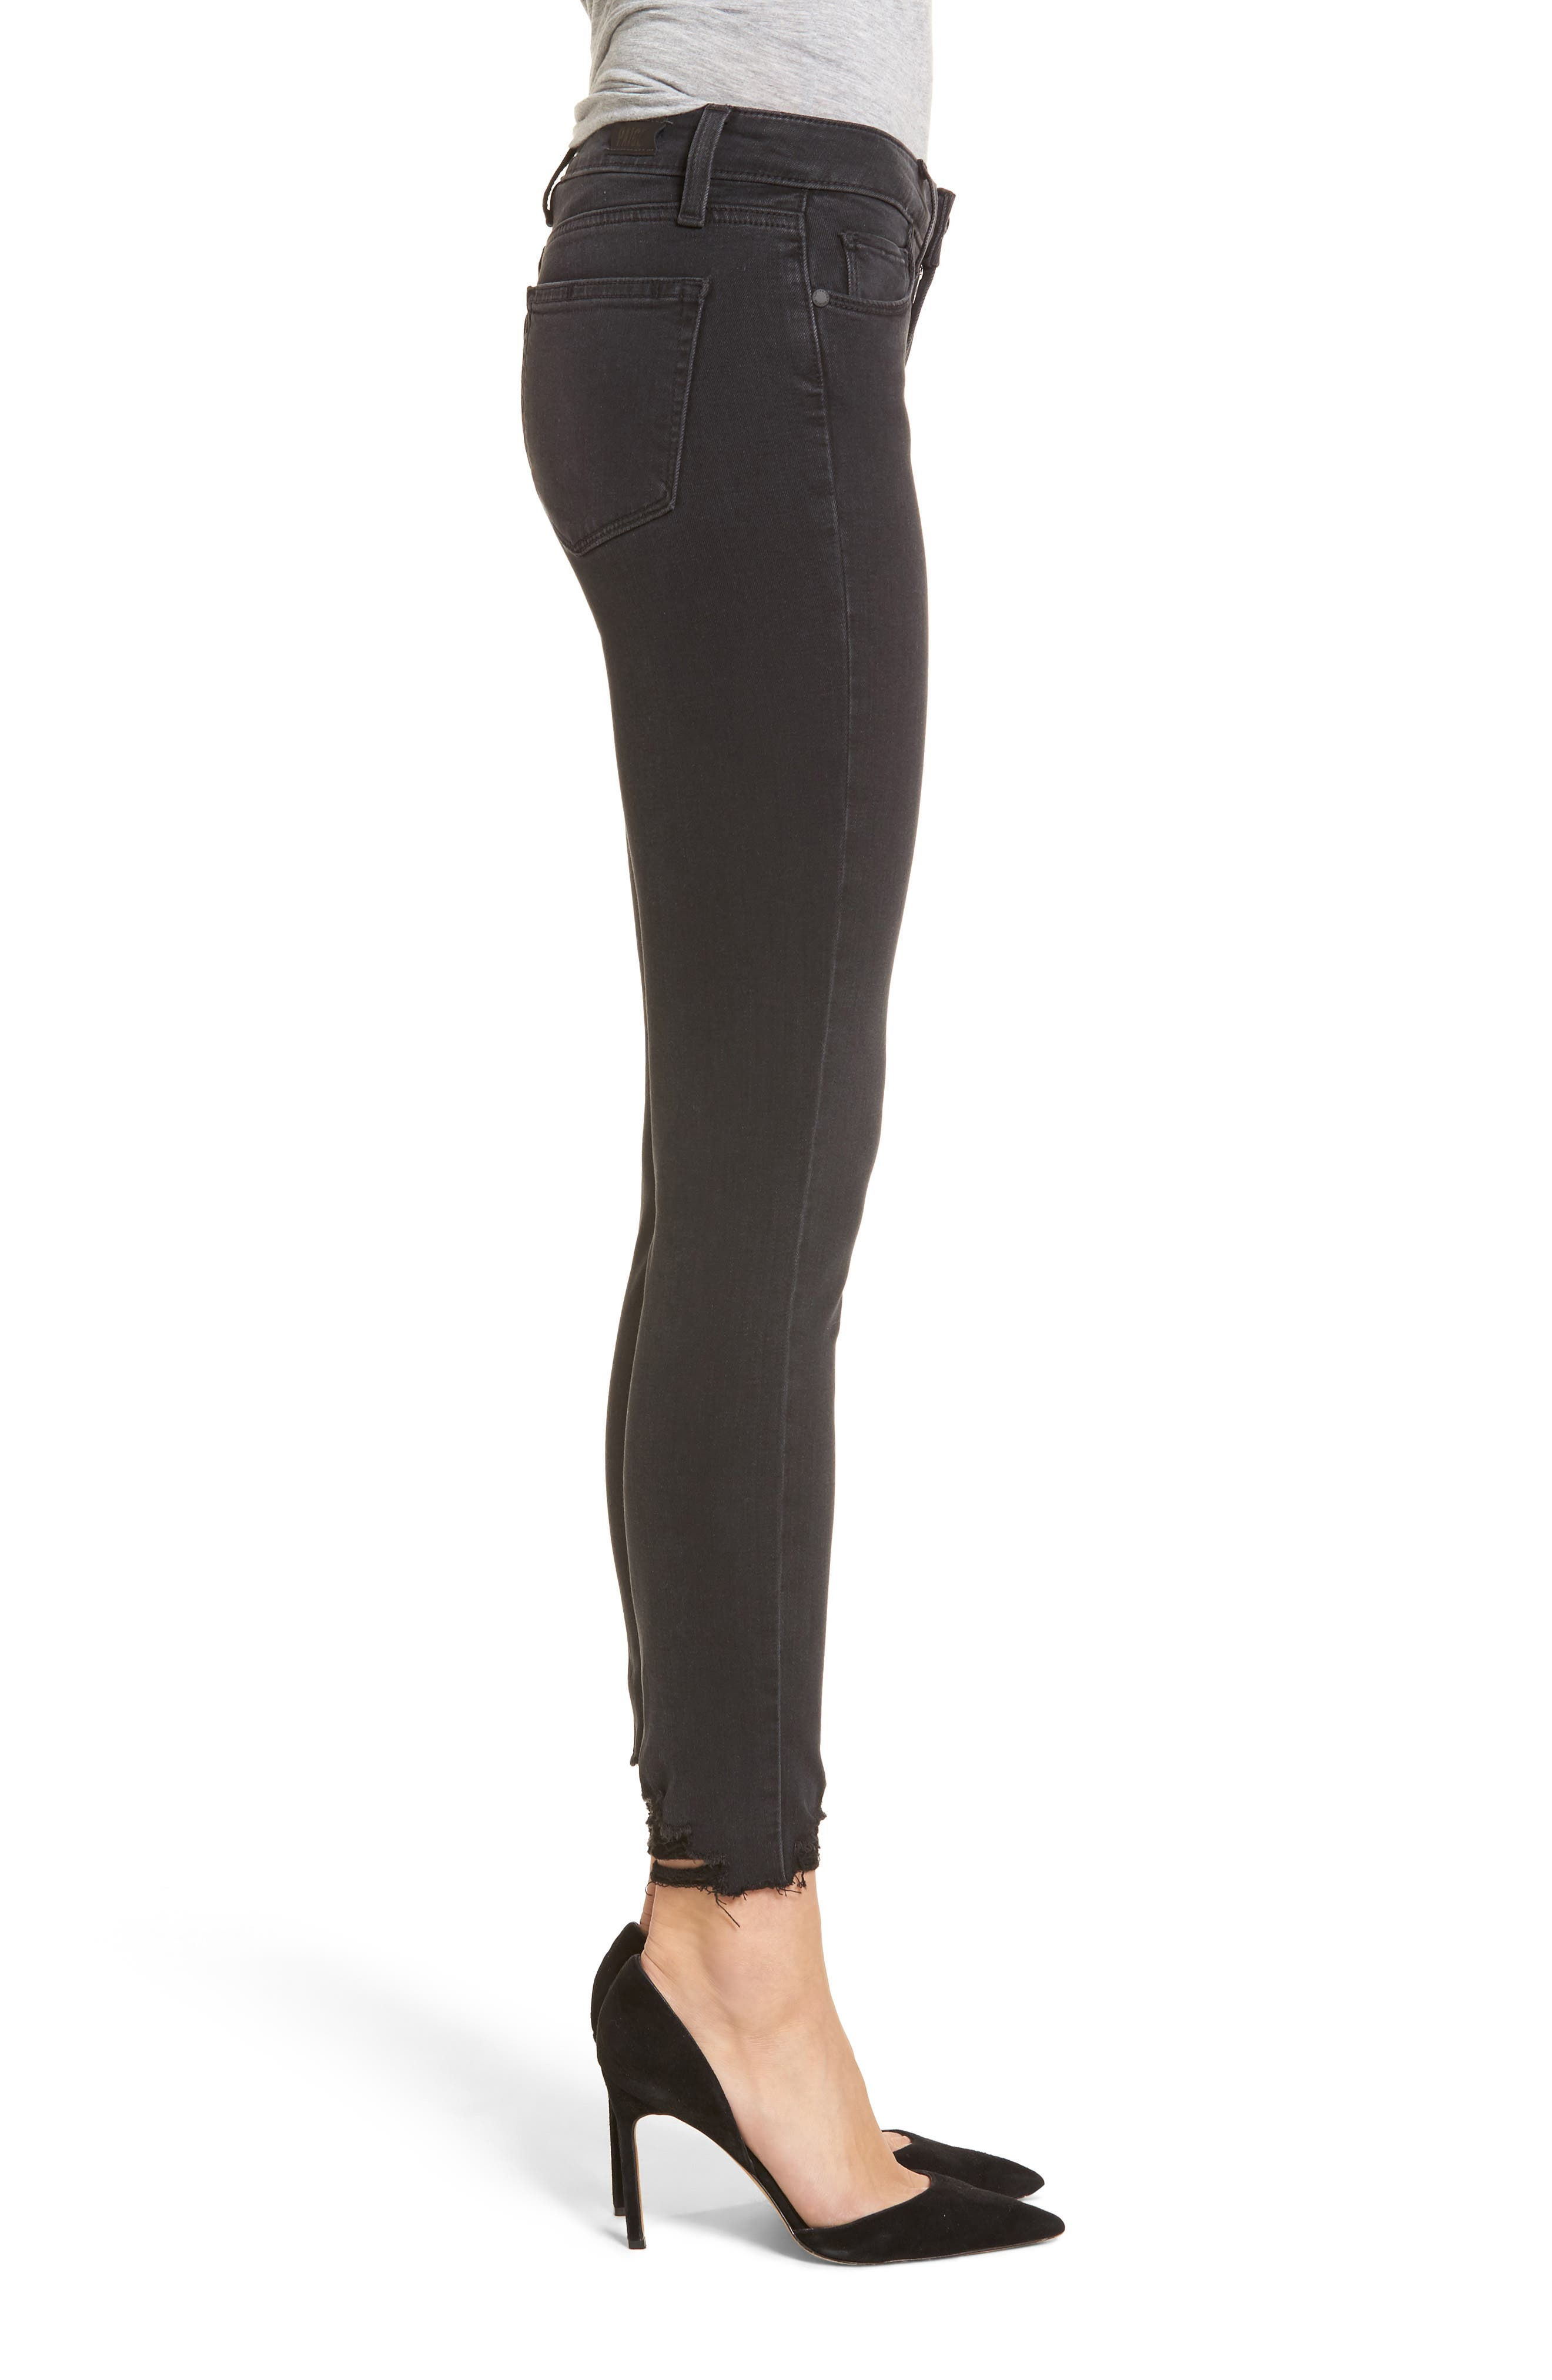 PAIGE, Transcend - Verdugo Ankle Skinny Jeans, Alternate thumbnail 4, color, 001